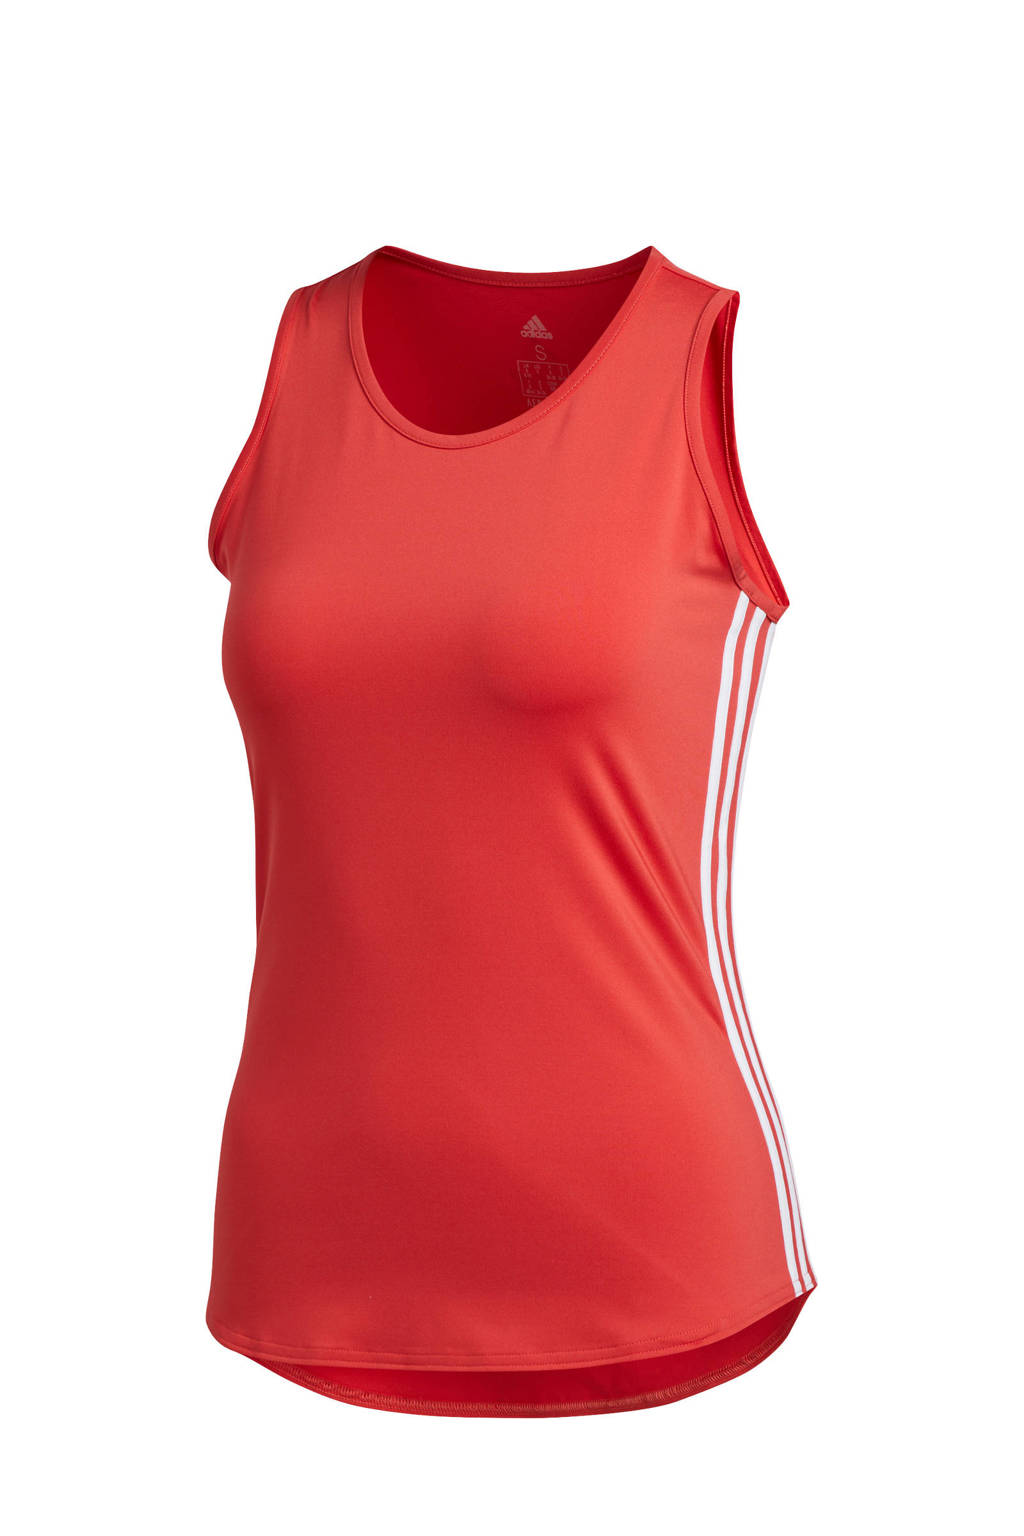 adidas Performance sporttop rood/wit, Rood/wit